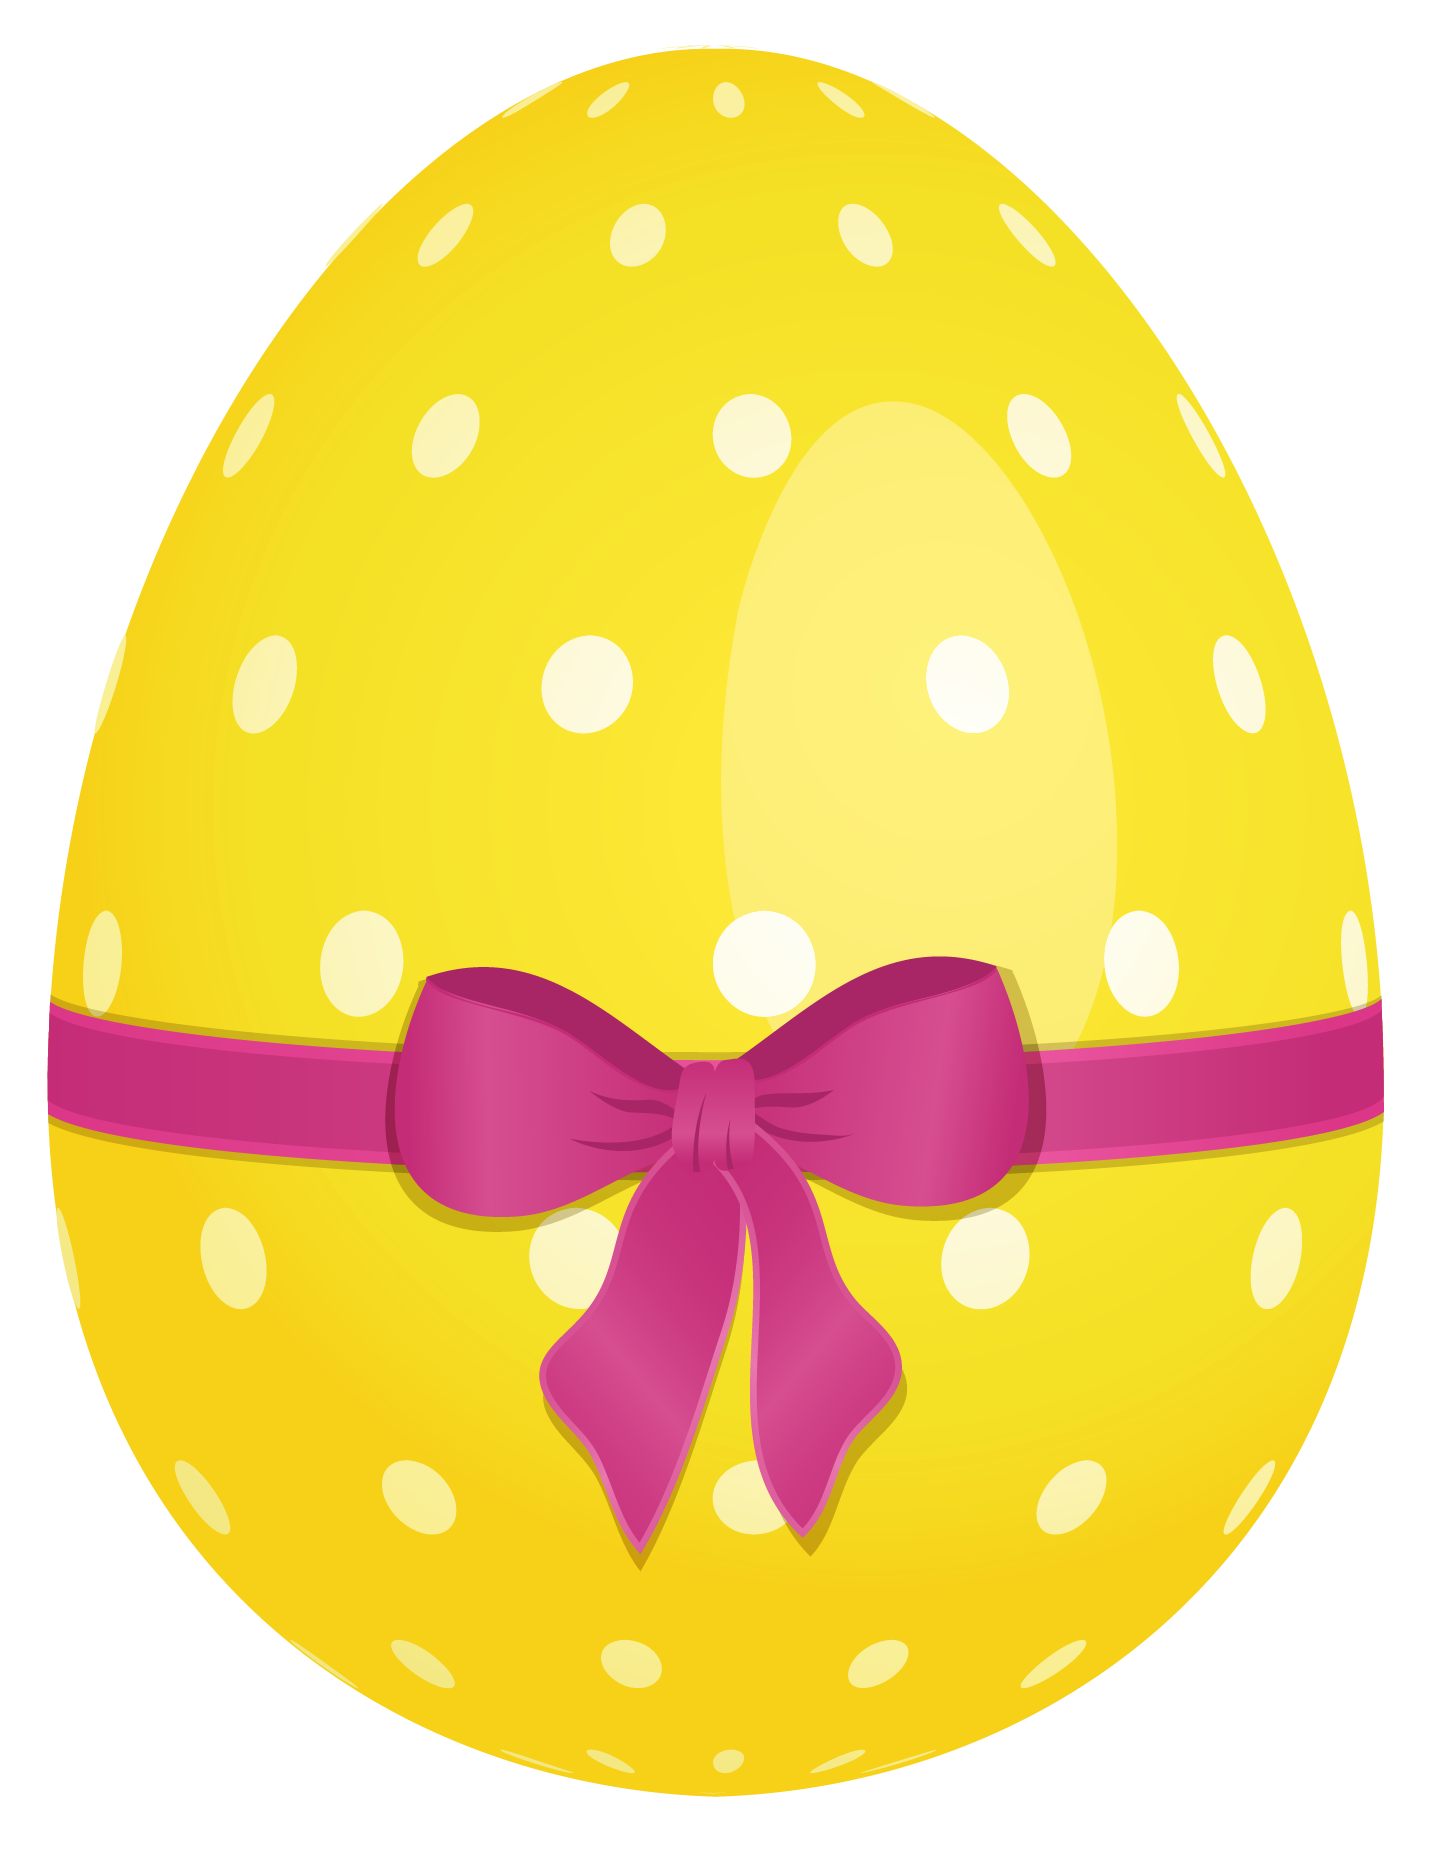 Easter Egg Images Clip Art - Cliparts.co